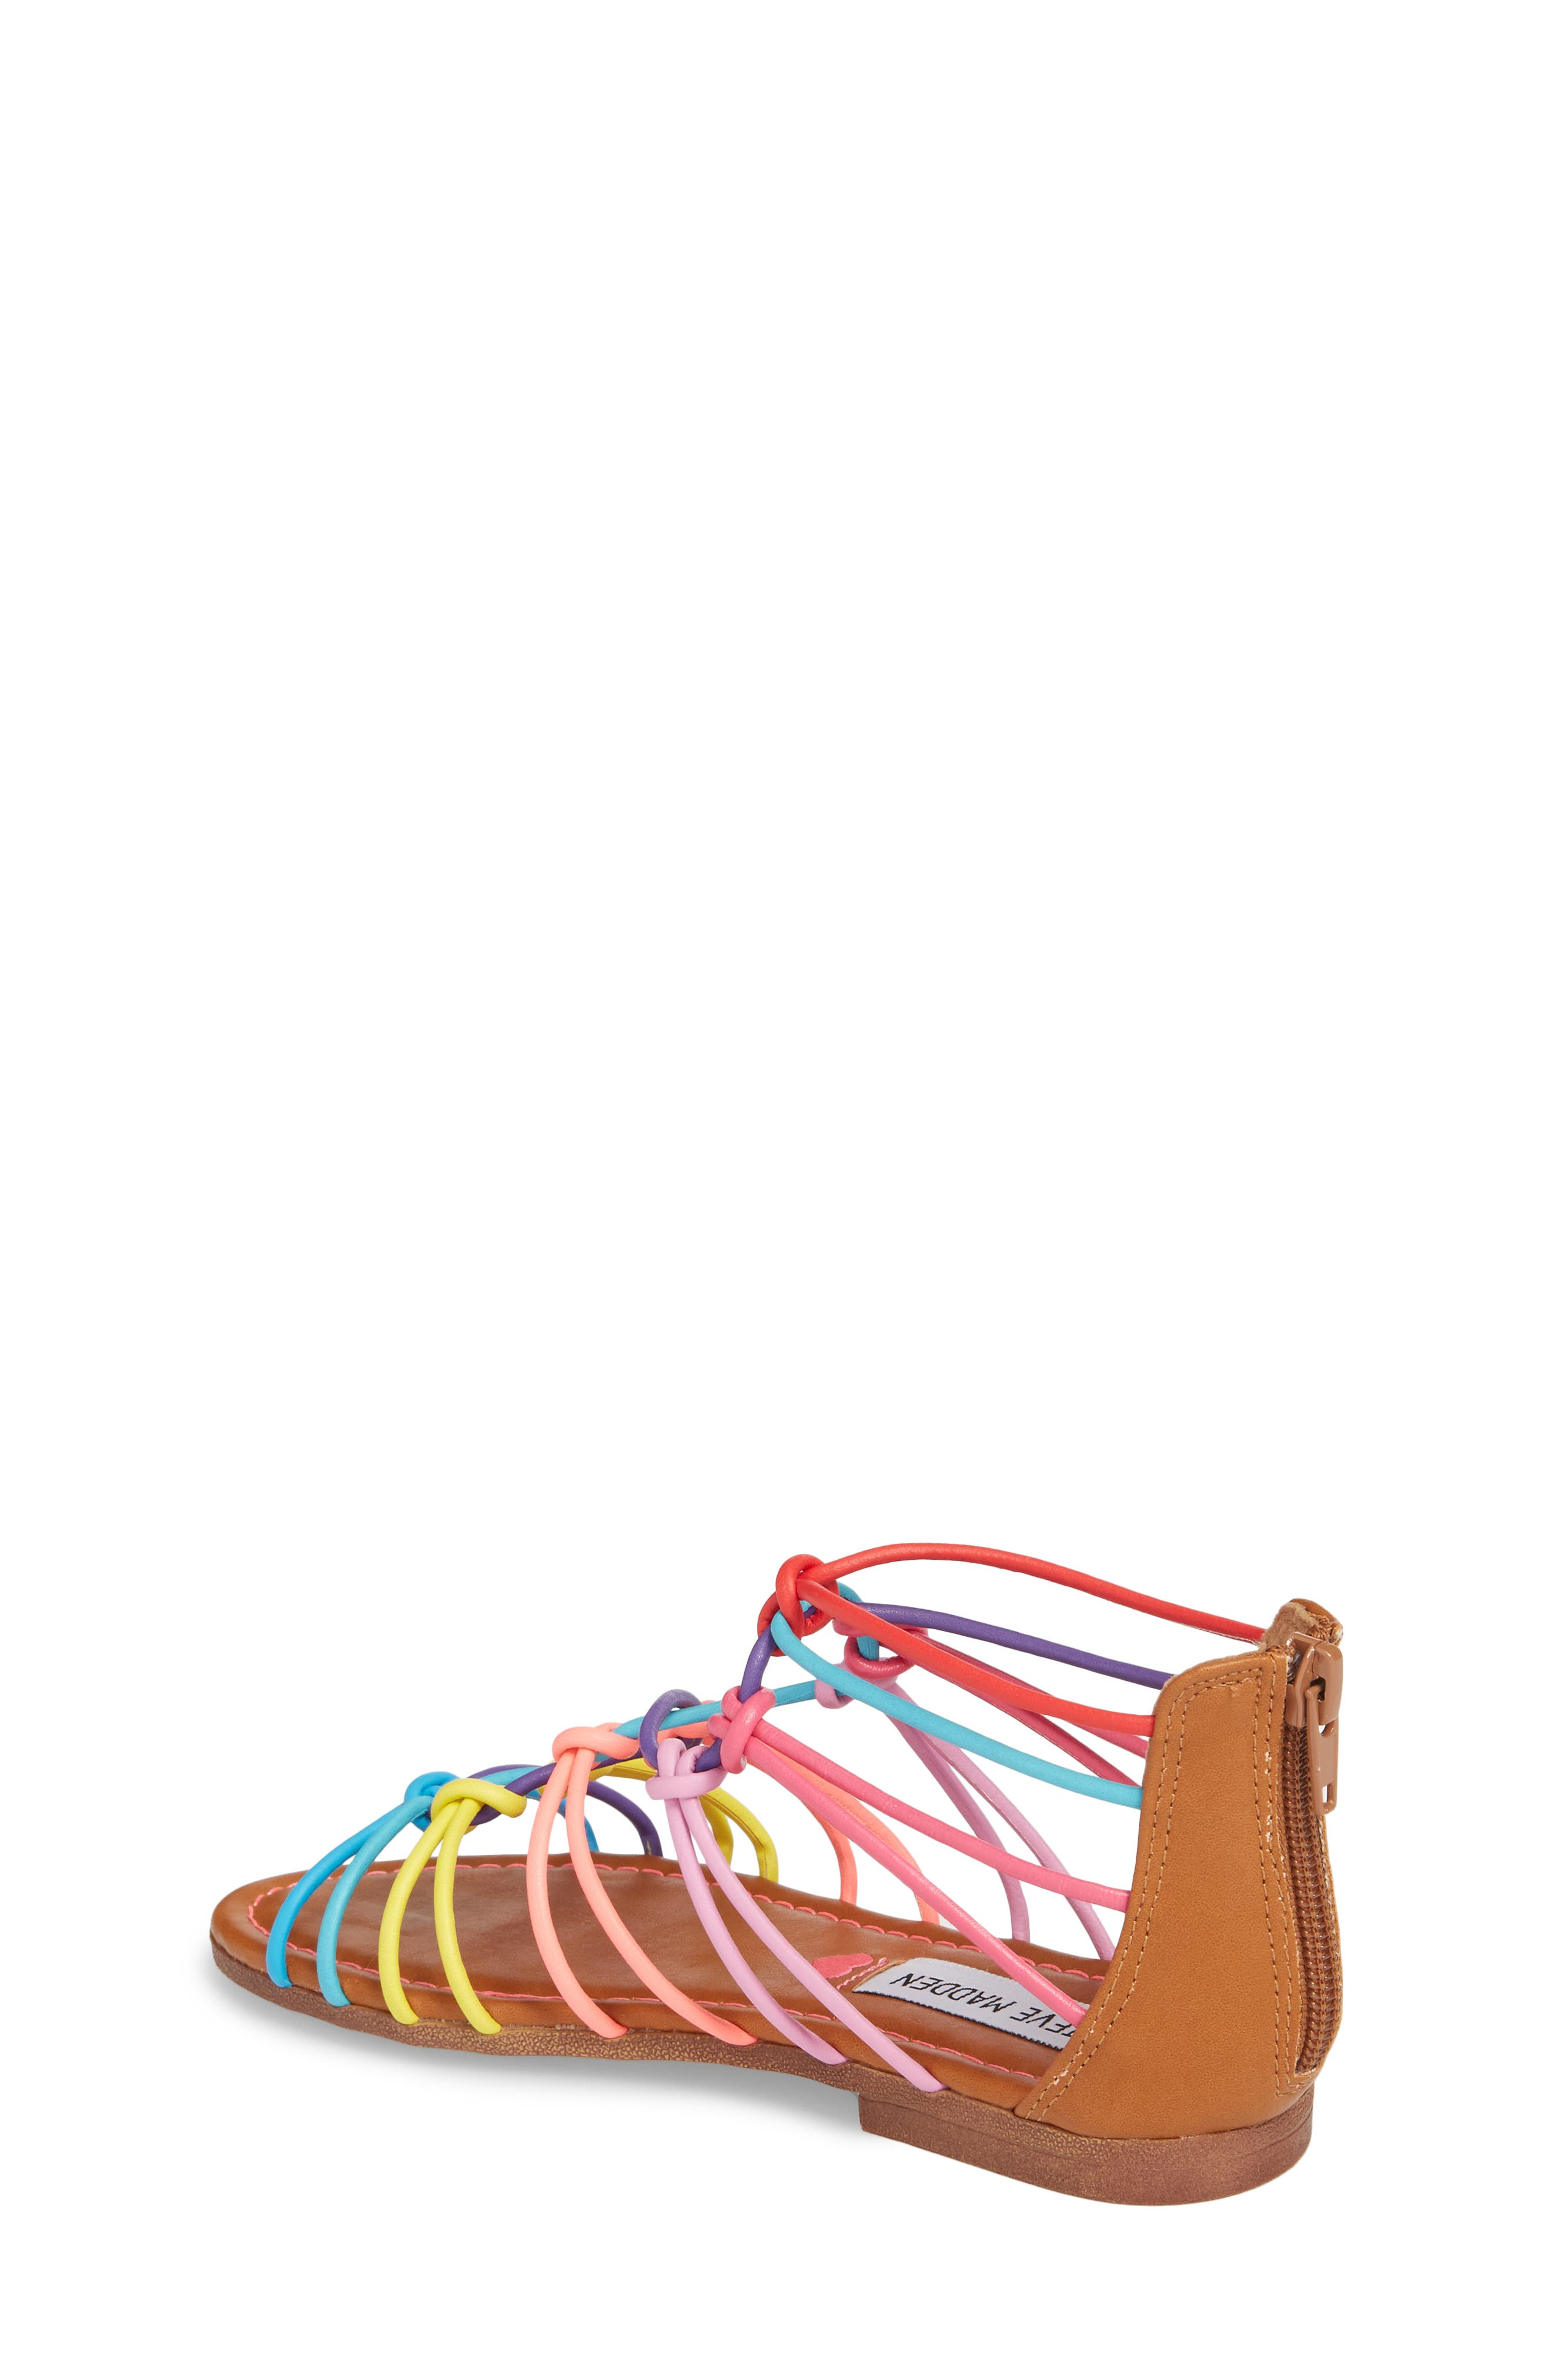 Mystery Strappy Sandal,                             Alternate thumbnail 2, color,                             650